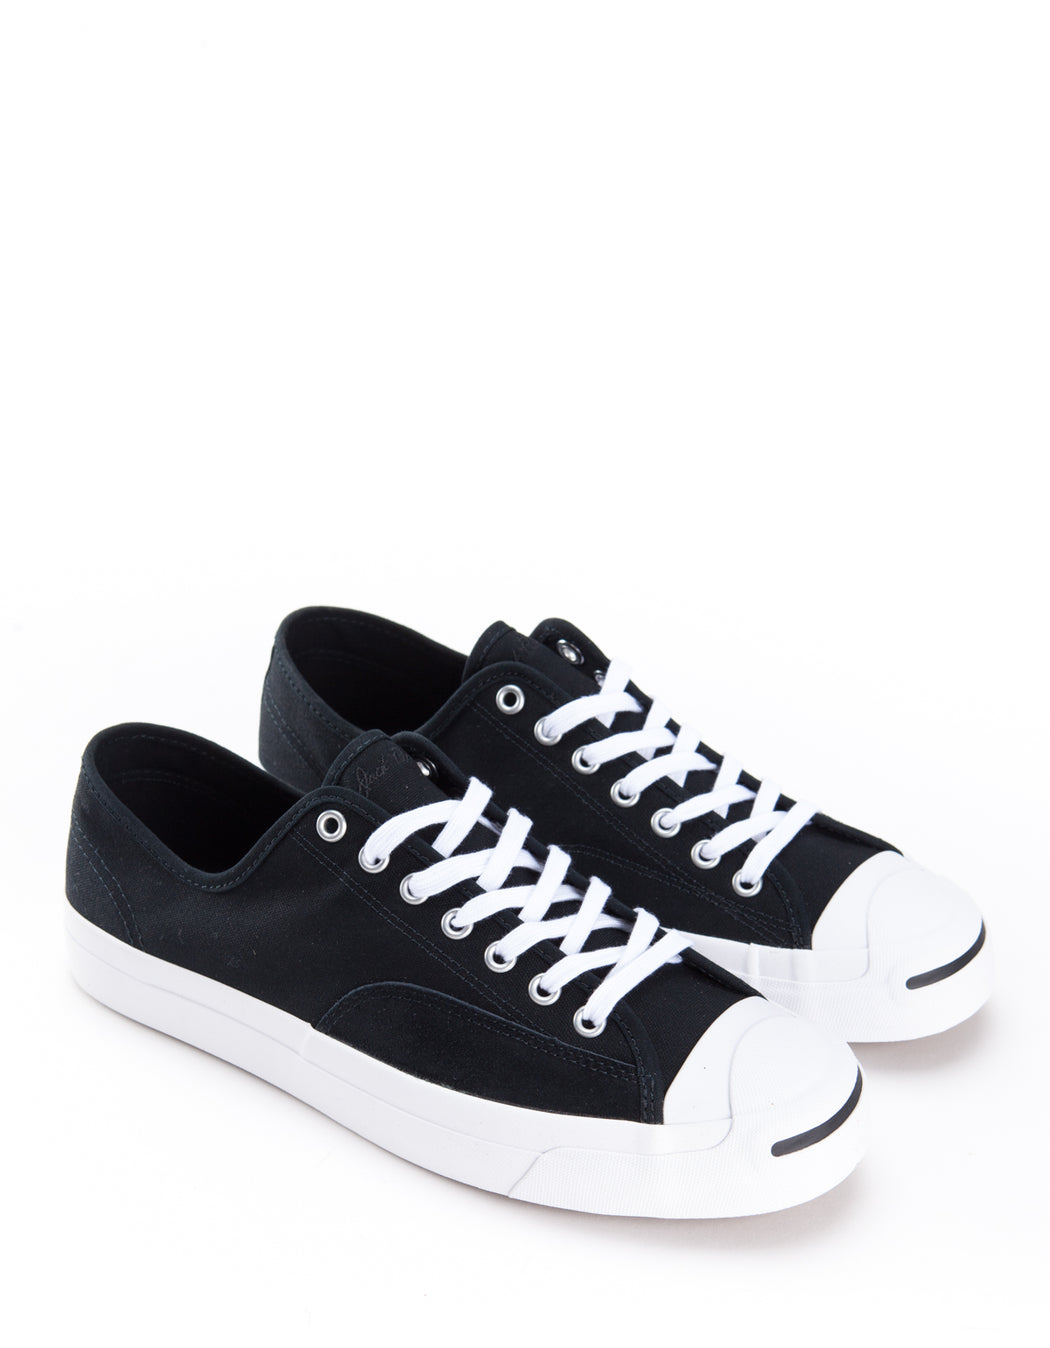 8080e3de9a99 Converse Jack Purcell Pro Canvas Low Top Ox Black — Goodnews Skateshop